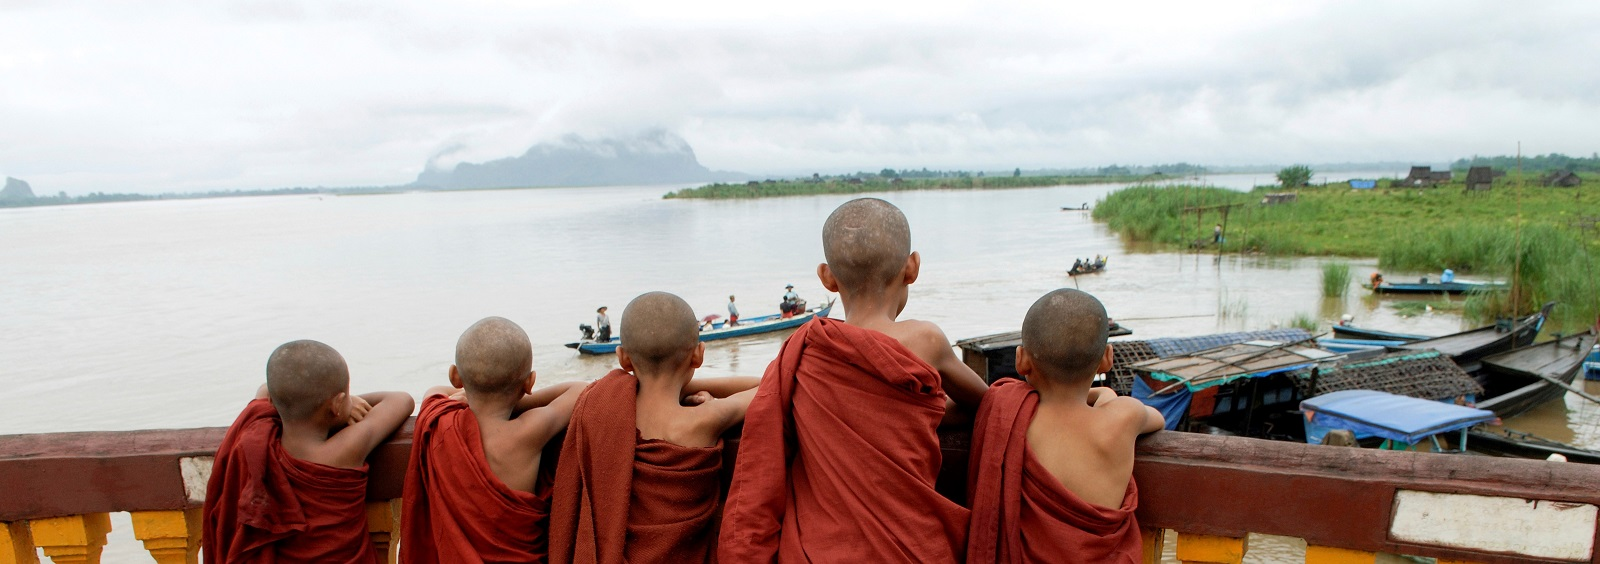 Buddhist novices at a small port on the Salween River in Karen State, Myanmar (Photo: Thierry Falise/via Getty Images)